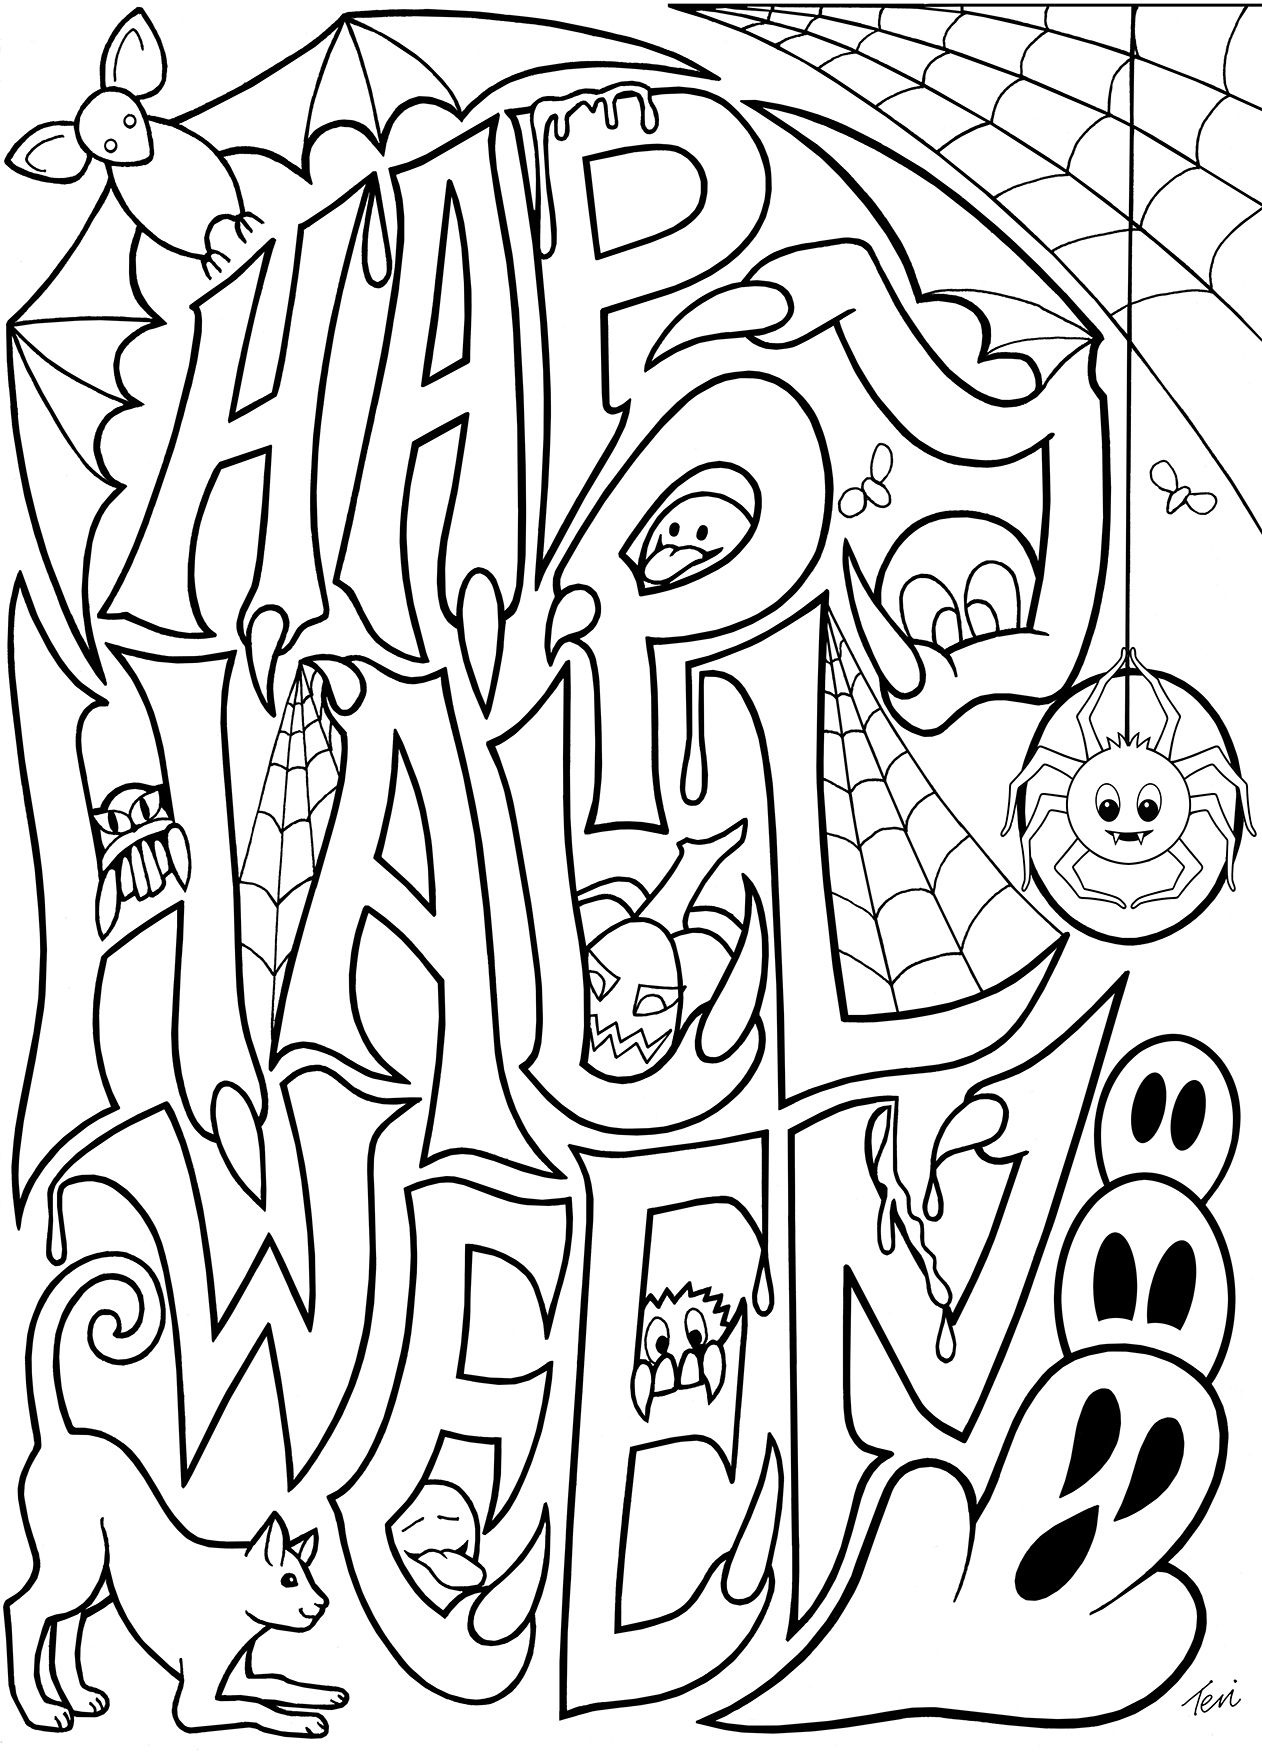 halloween coloring pages online october 2013 team colors coloring halloween pages online